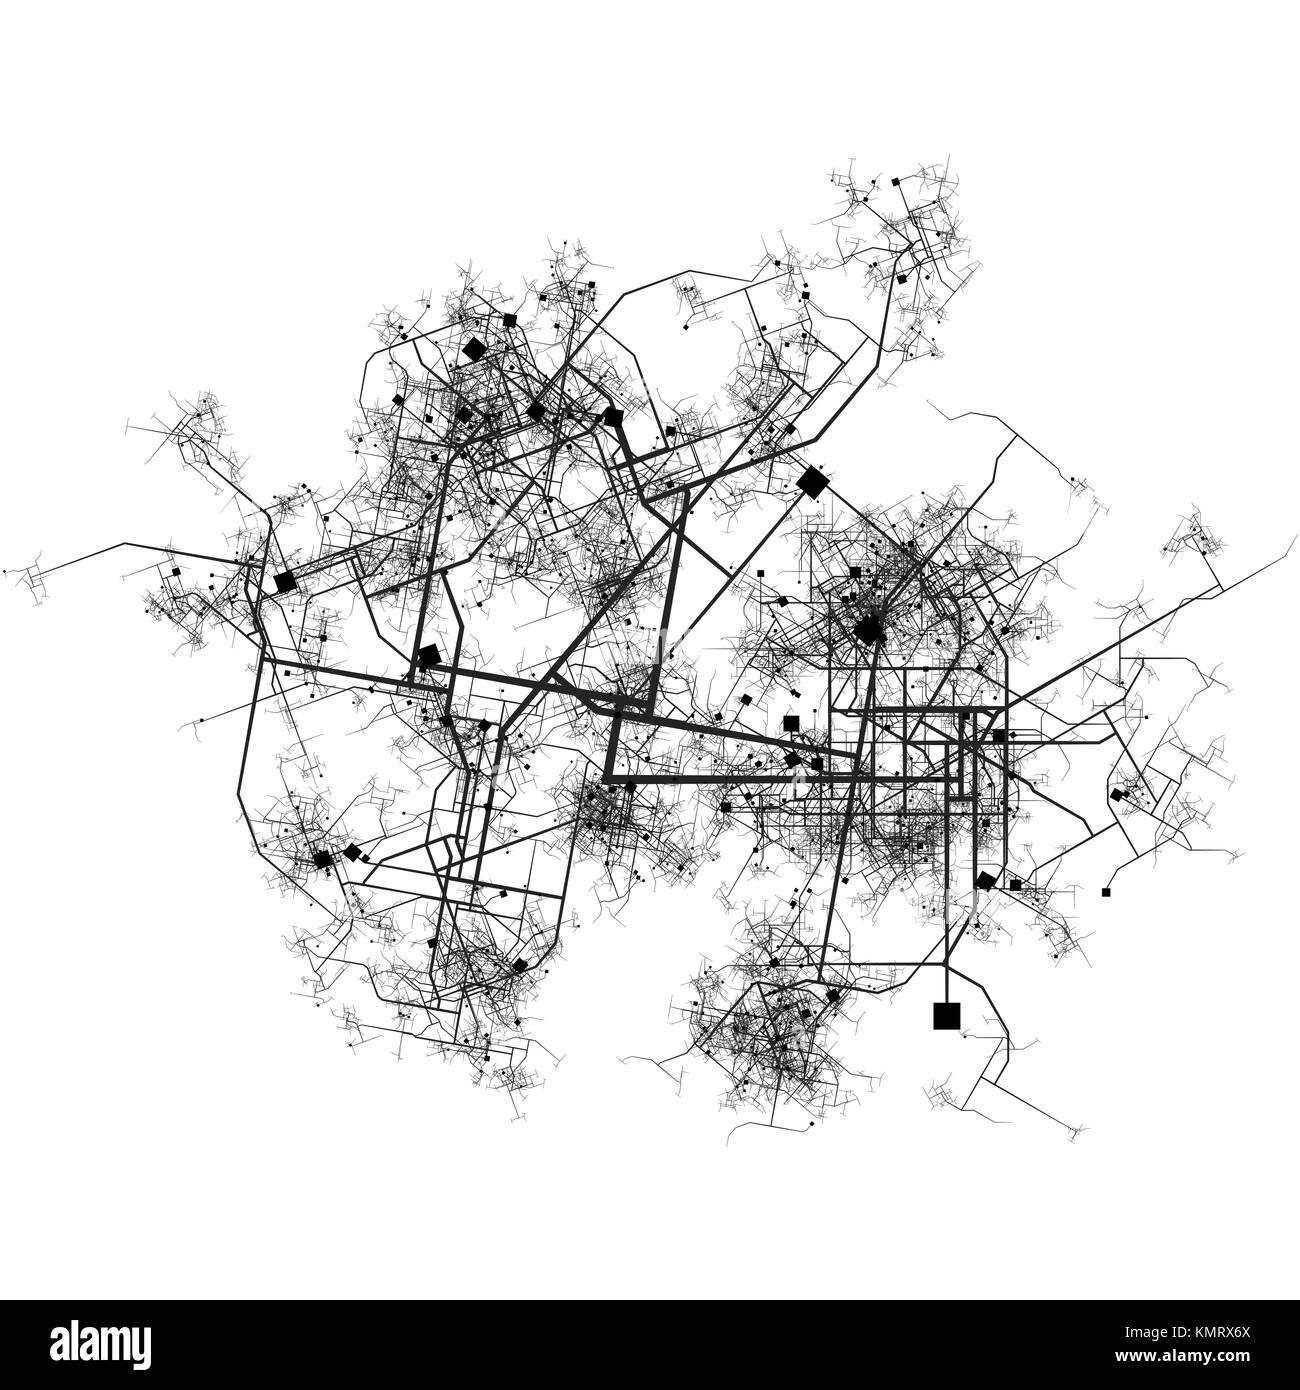 Intricate Fictional City Map with Roads and Buildings Top View - Stock Image